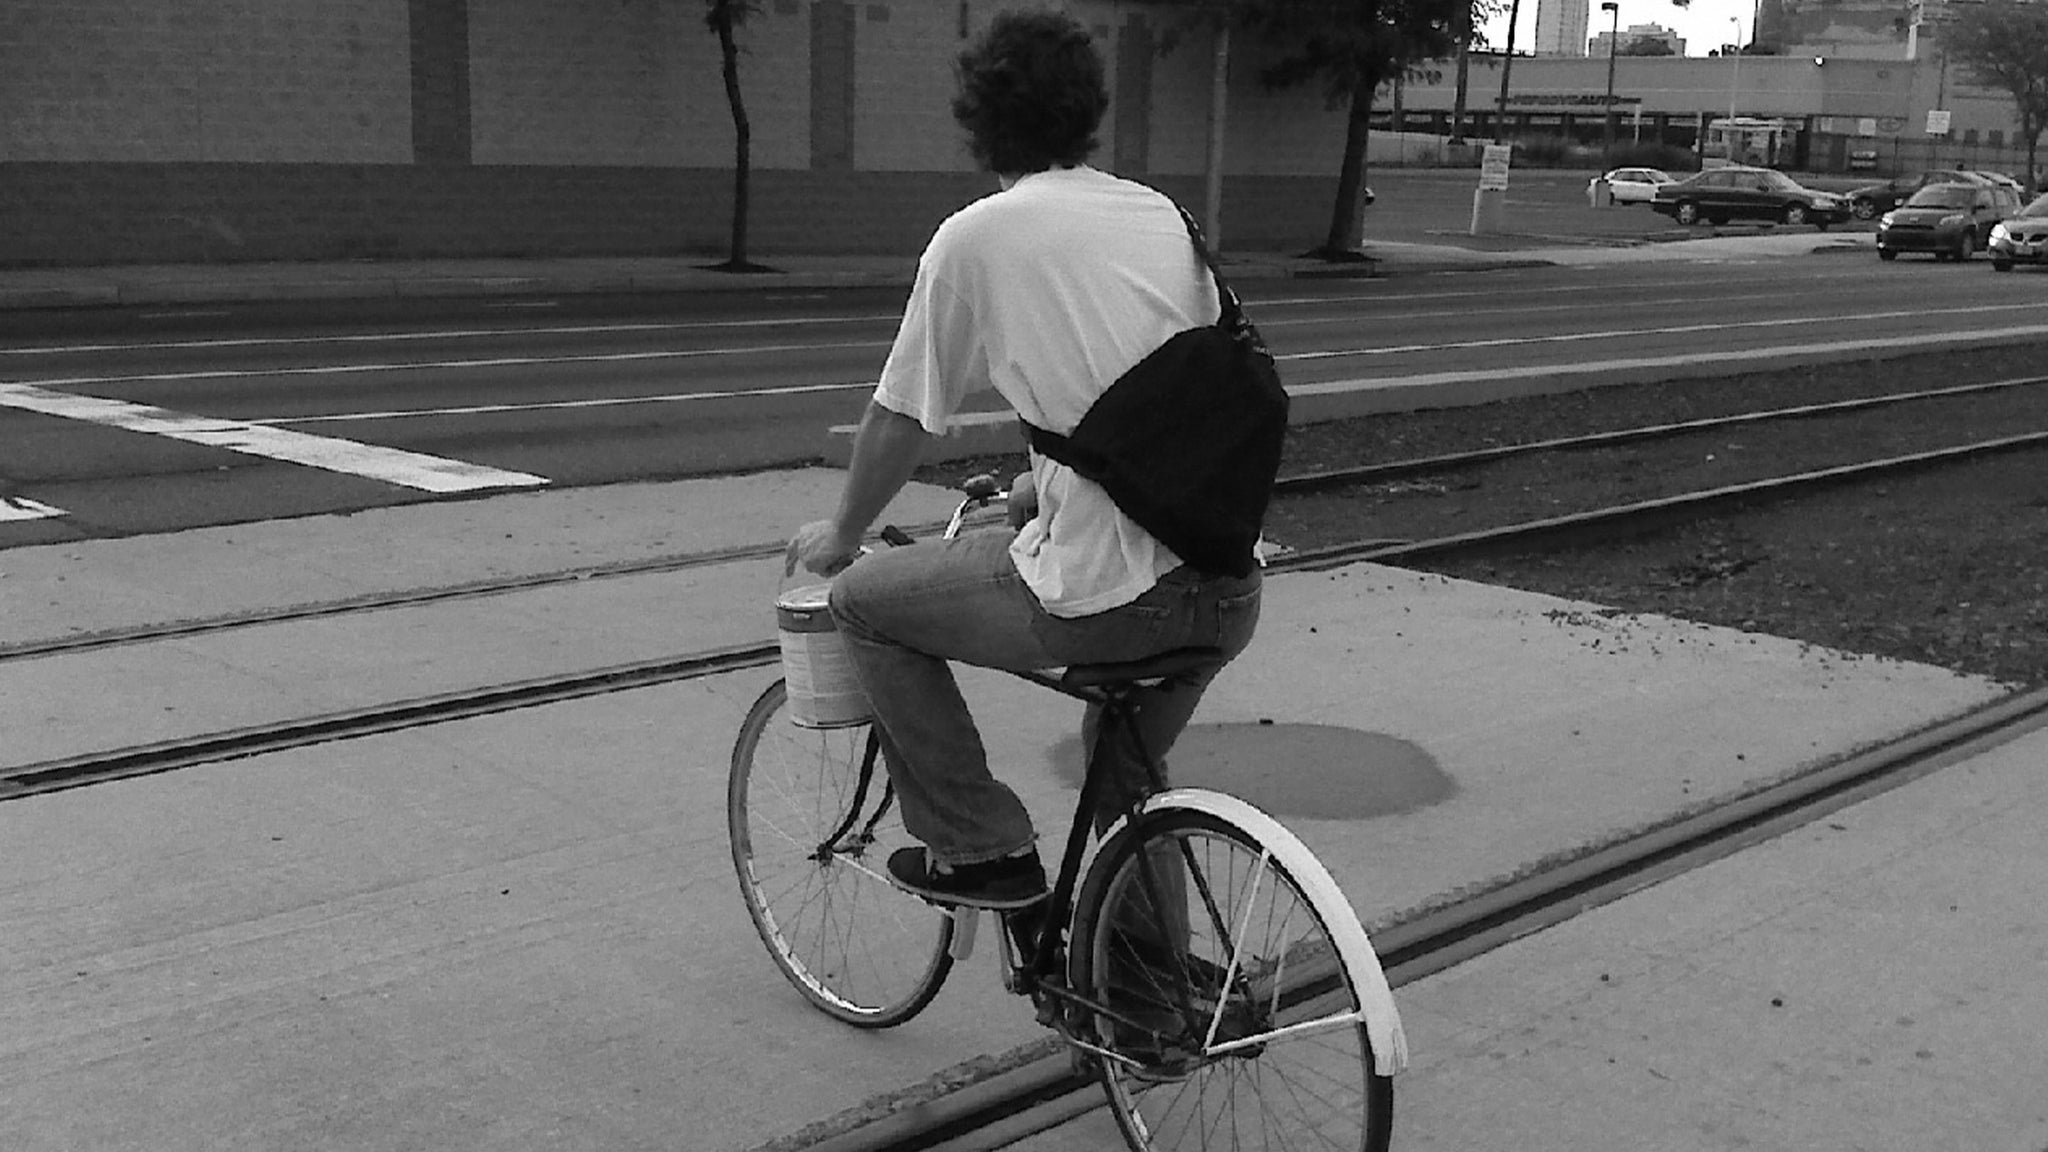 Jaime rides bicycle across train tracks.